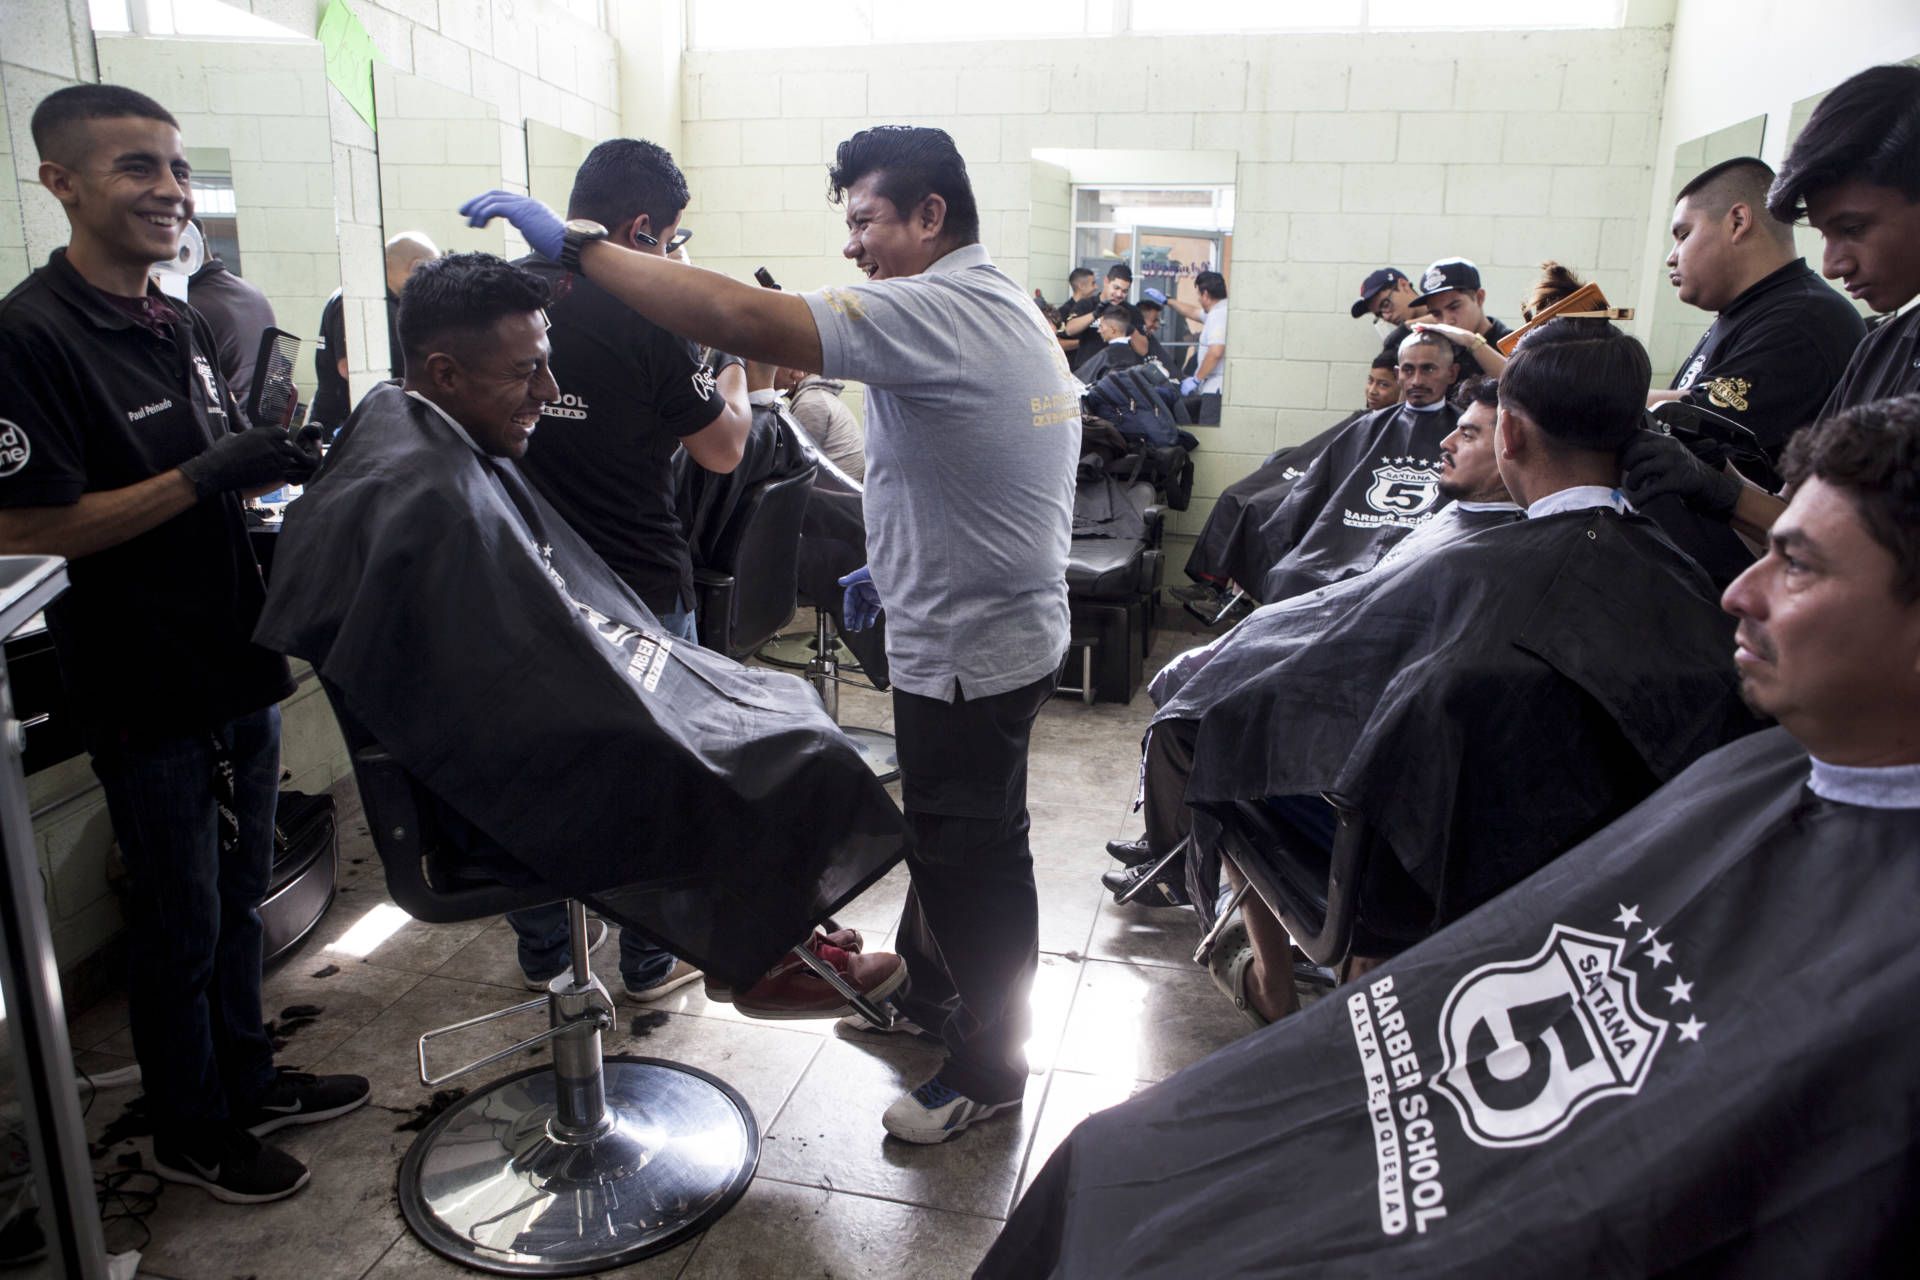 Thousands of Central American migrants traveling together through Mexico to reach the U.S. border arrived in Tijuana Thursday, Nov. 15, 2018. At a Catholic center called Padre Chava, migrants received breakfast and free haircuts from students of Santana 5 Barber School. The school has provided free haircuts at the shelter for years.   Erin Siegal McIntyre/KQED